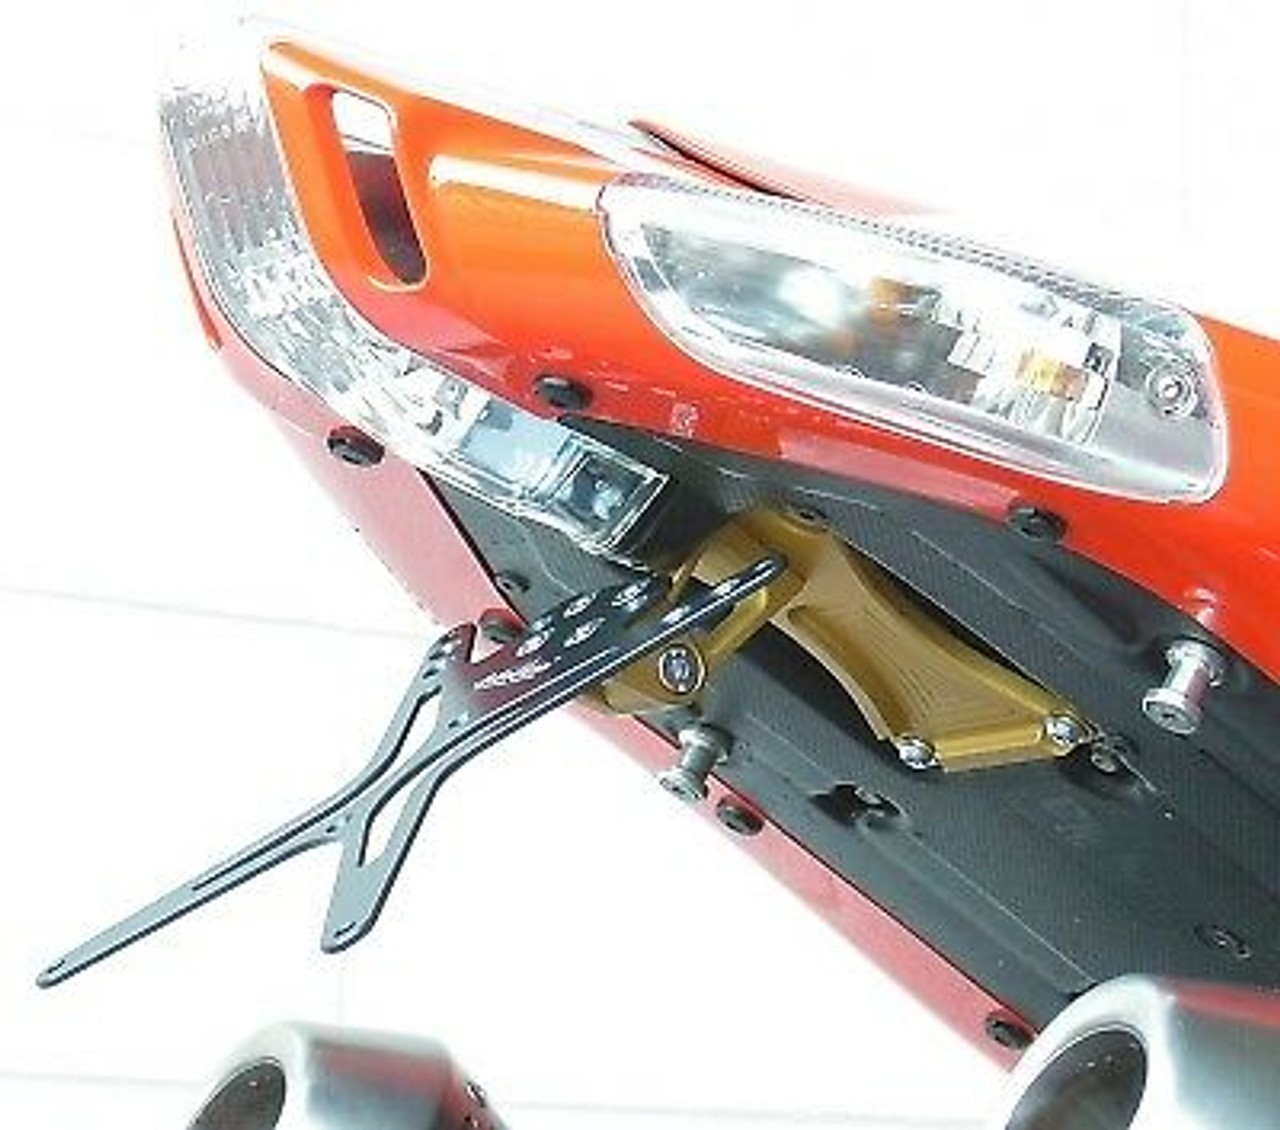 Melotti Racing Aprilia RSV1000 2006-09 / TUONO 2006-10, Number Plate Holder, Tail Tidy, CNC Machined Motorcycle, Black, Made in Italy